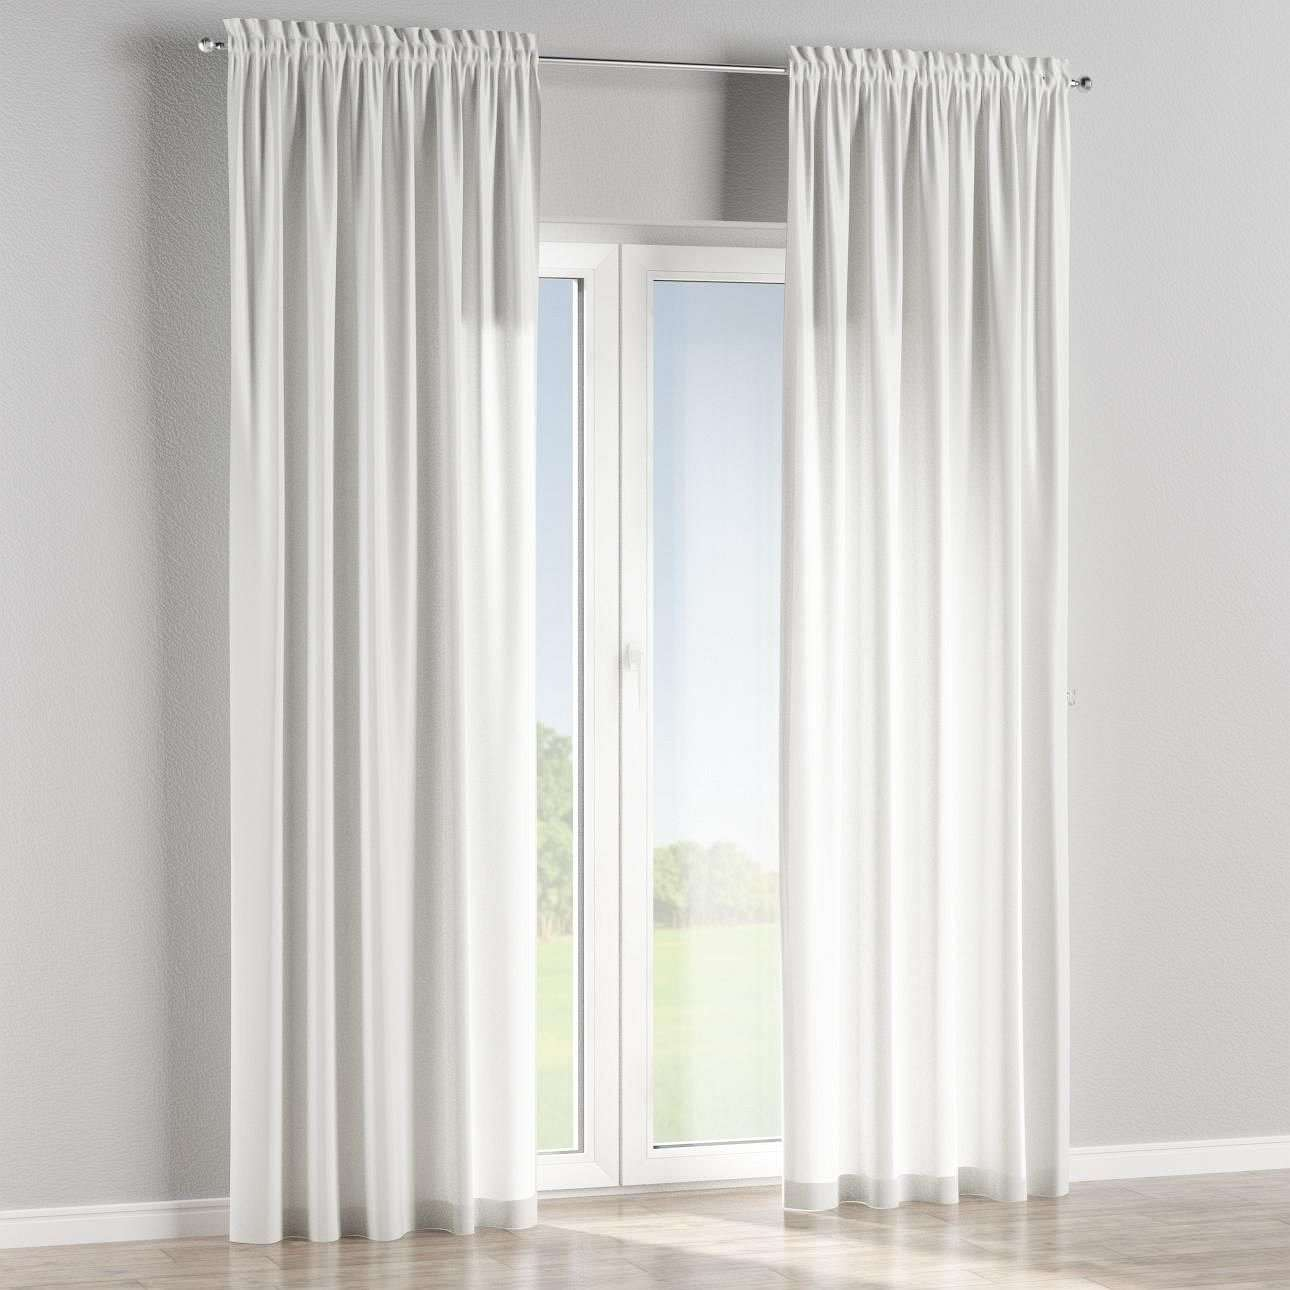 Slot and frill lined curtains in collection Fleur , fabric: 139-93